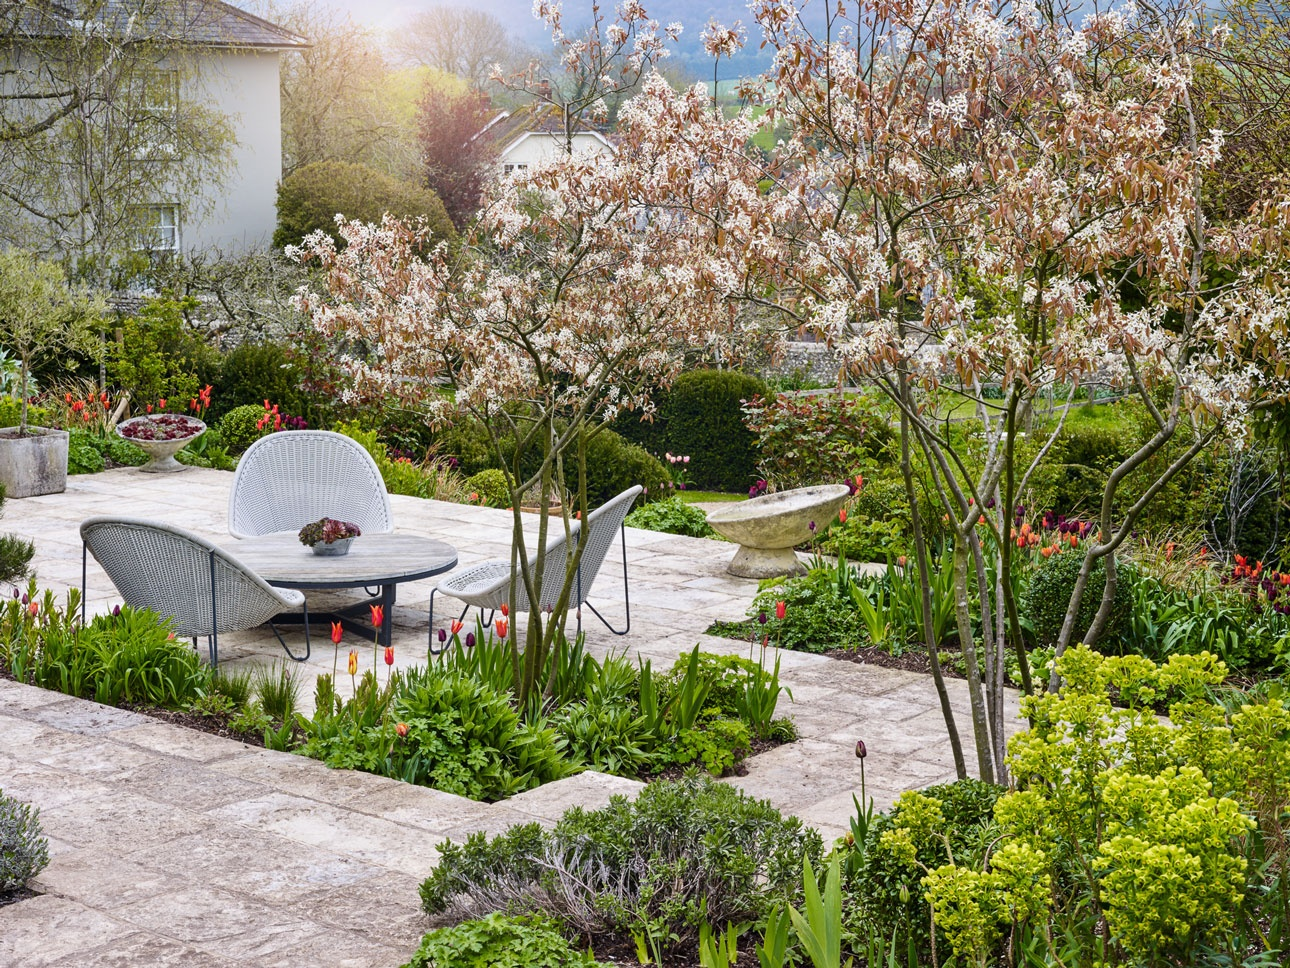 Purbeck limestone terrace with spring bulbs, green euphorbia, tulips and multistem amelanchier full of white blossom